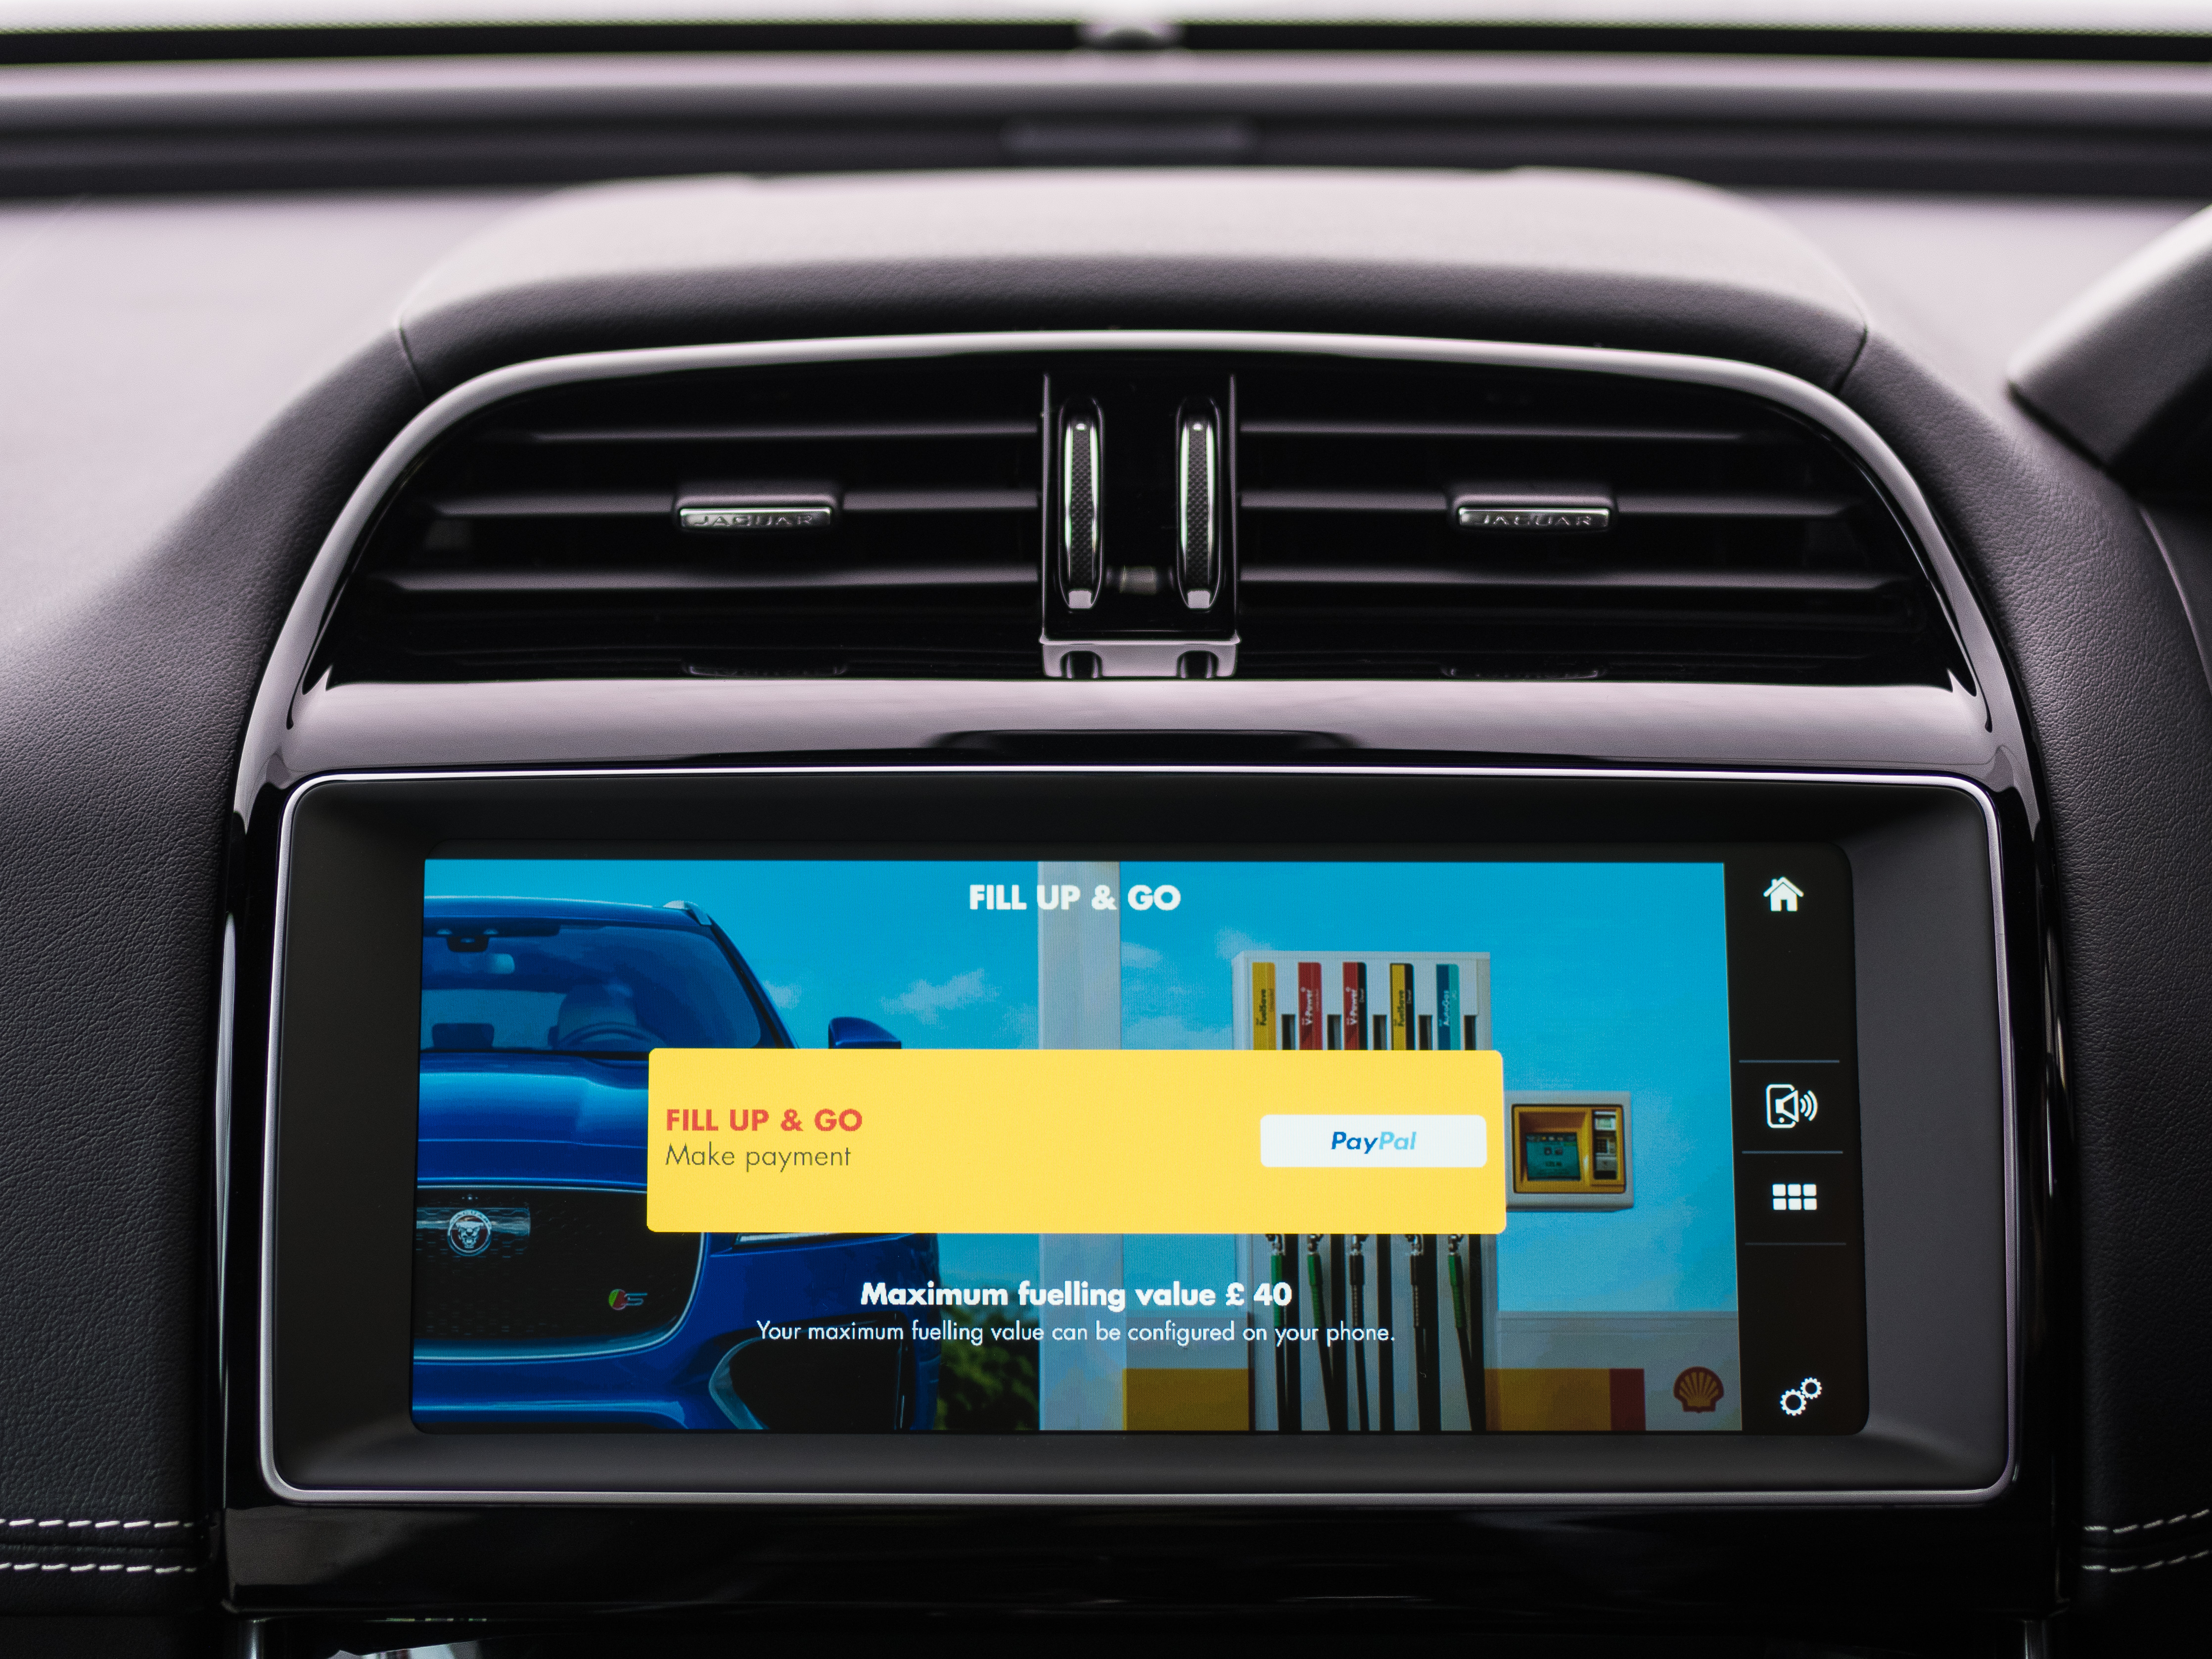 Jaguar Land Rover and Shell partnered to create a cashless pay-for-fuel app.